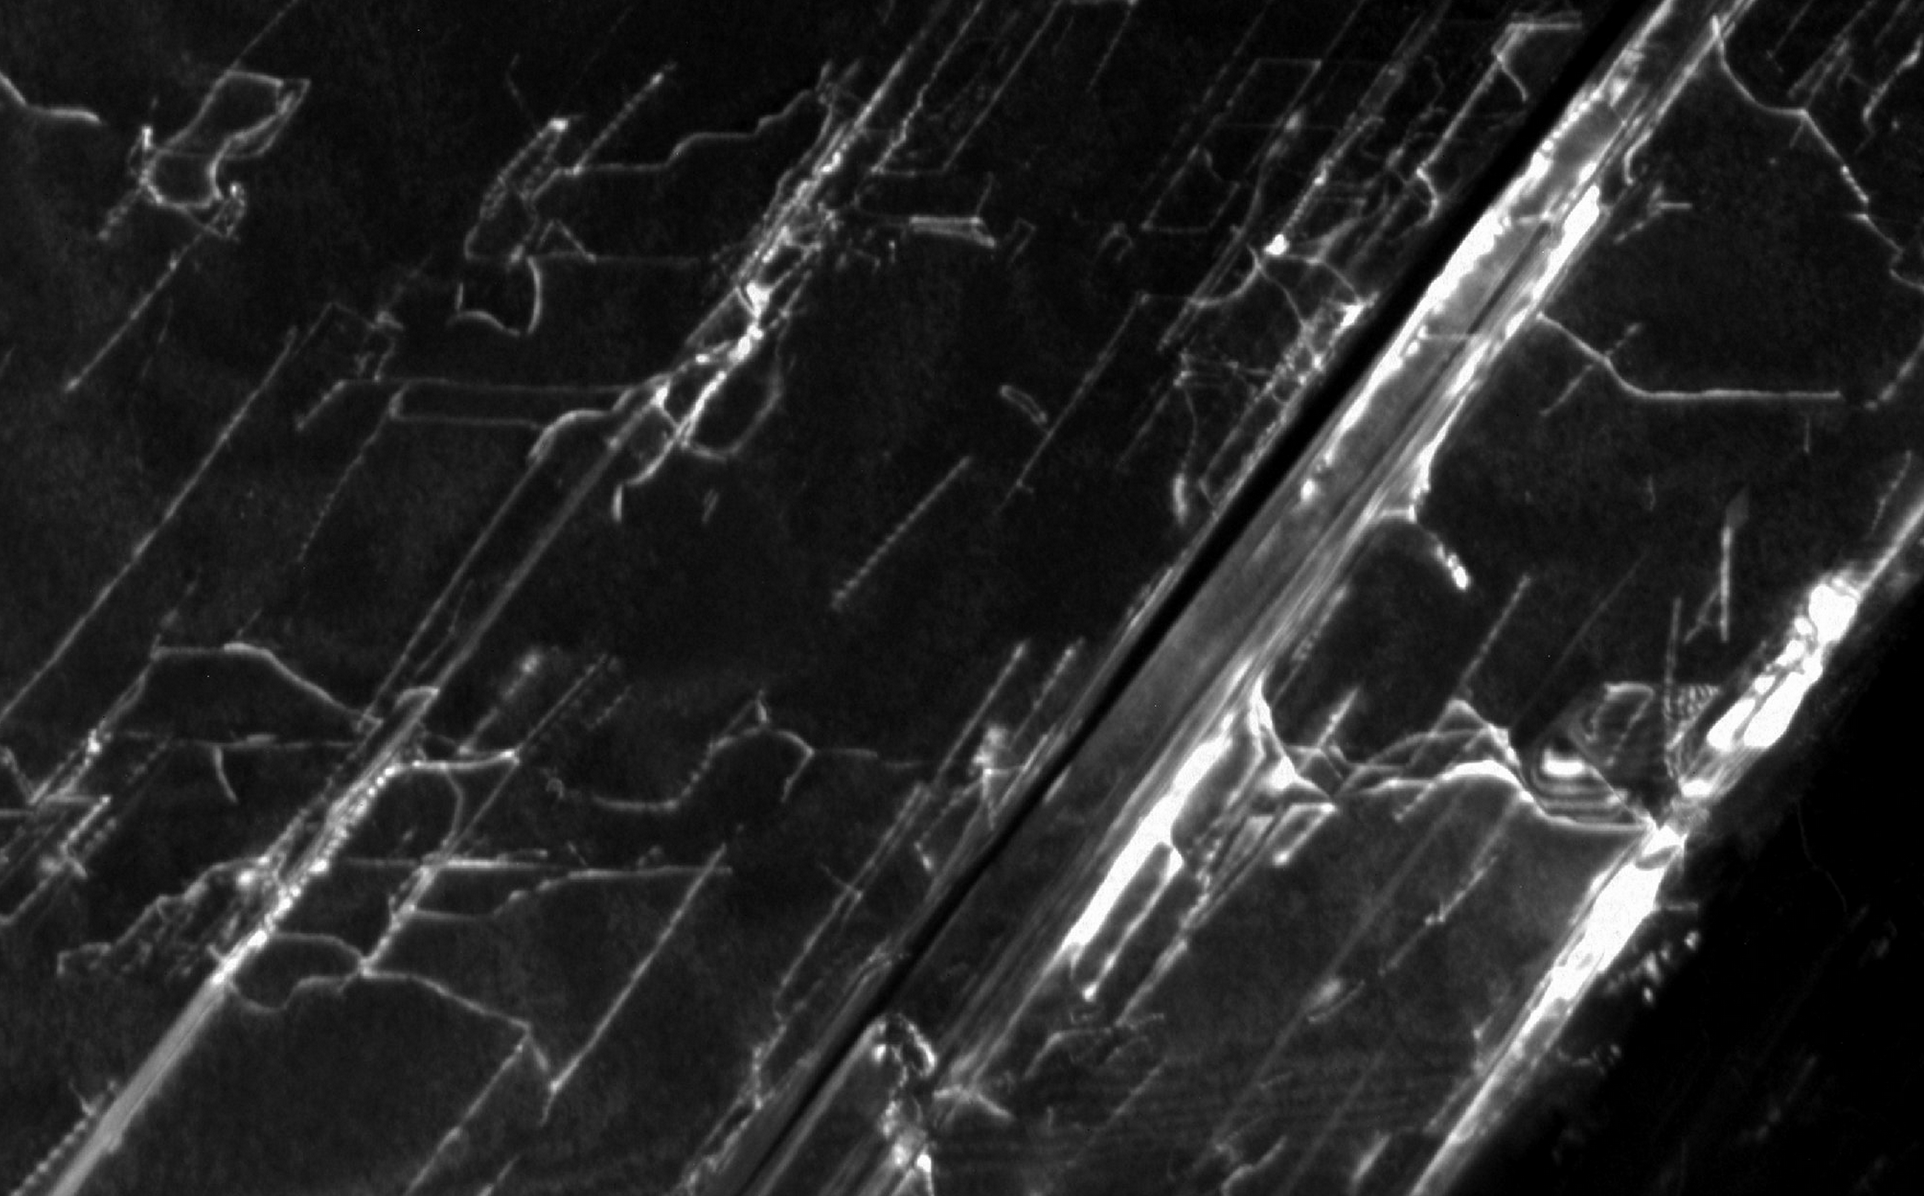 A close-up of the diamond crystal imaged with transmission electron microscopy.